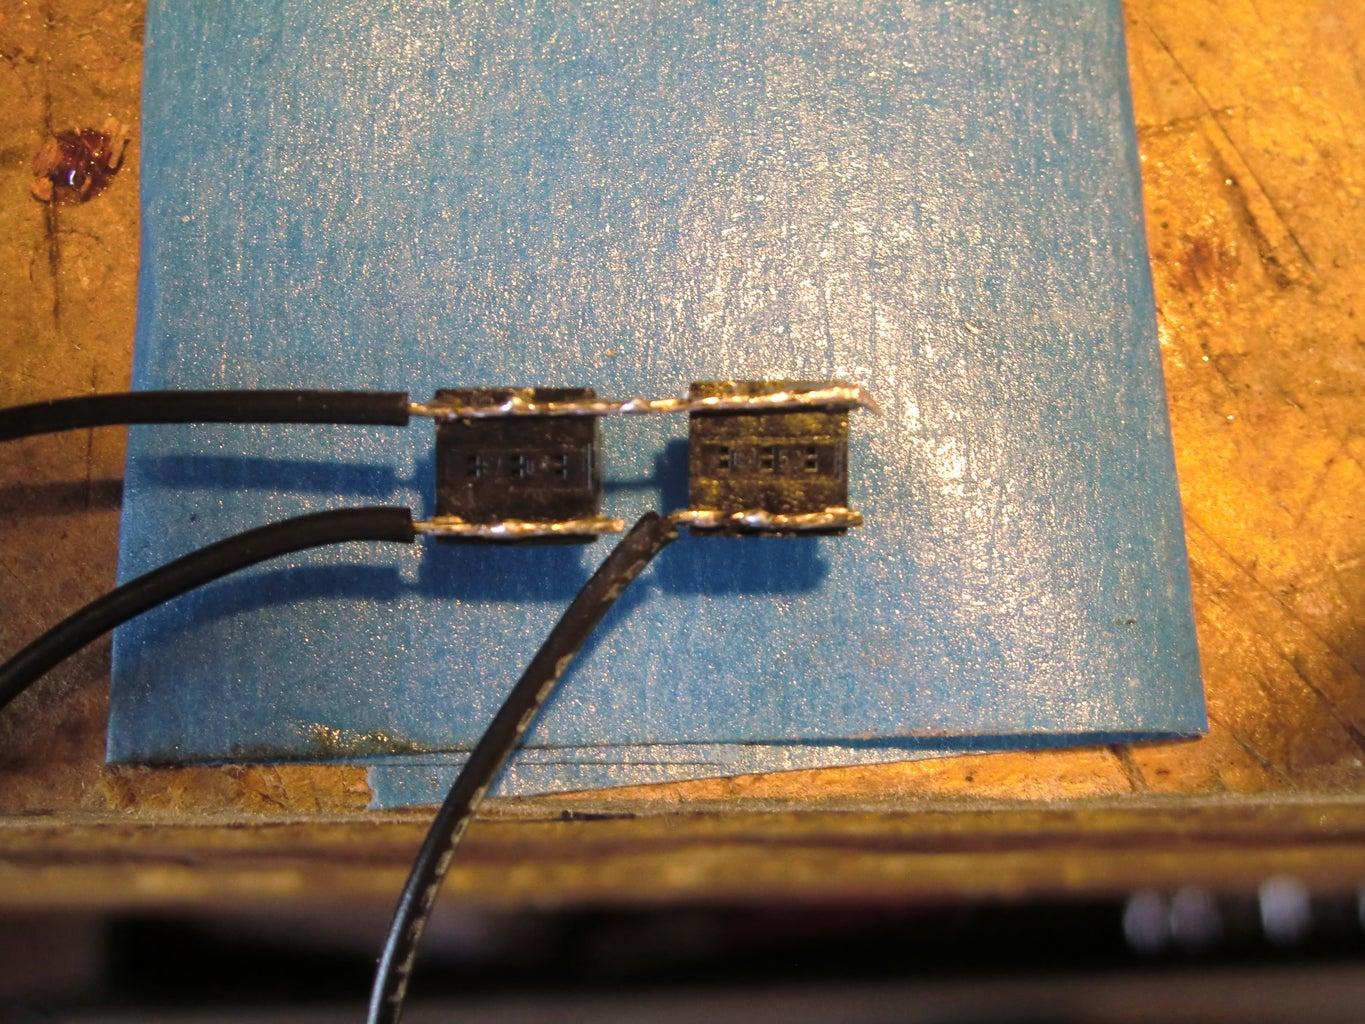 Circuitry Construction and Attachment